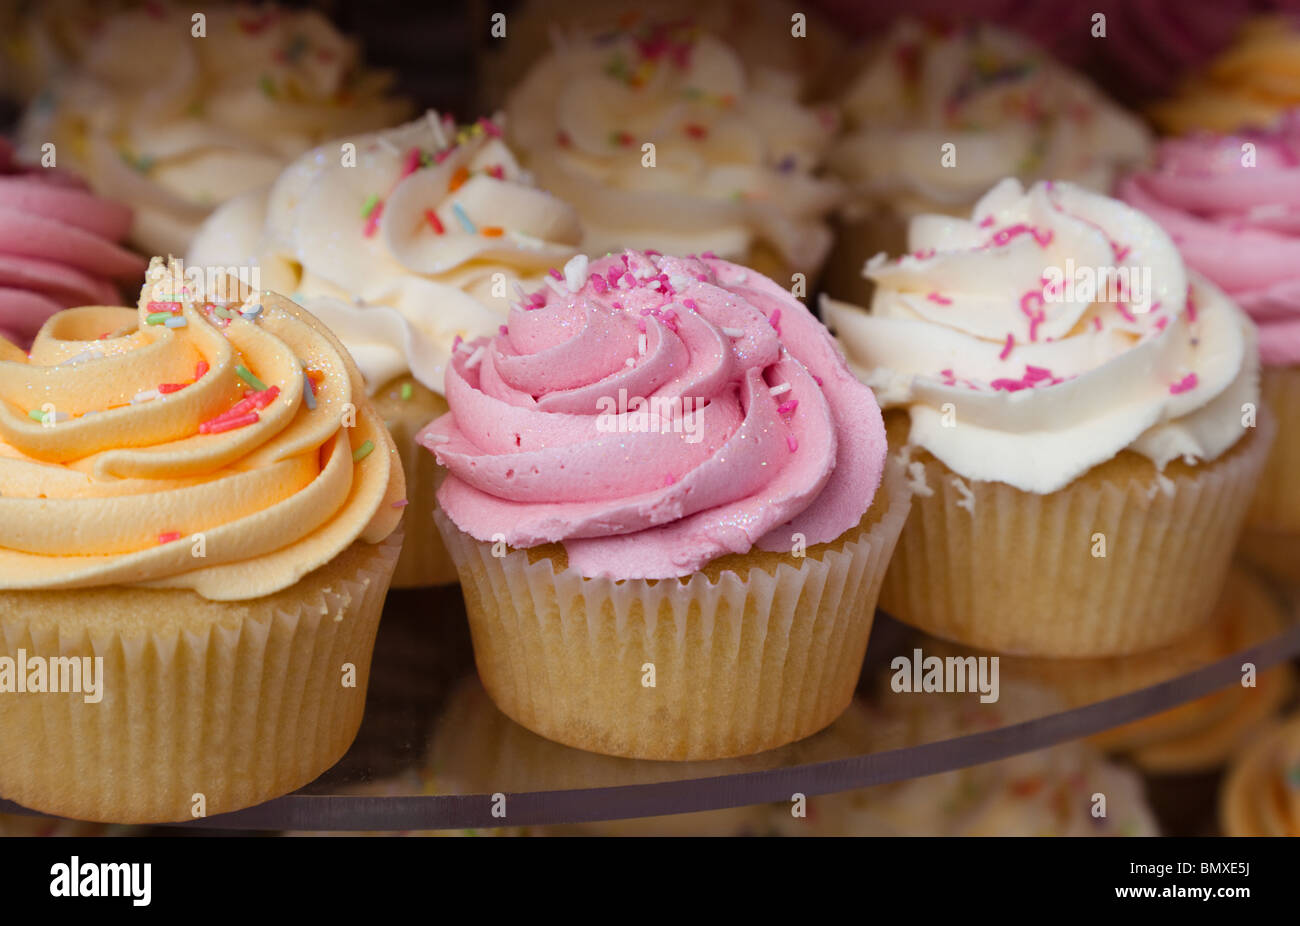 Stack of cup cakes with sugar icing on display, Glasgow, Scotland - Stock Image